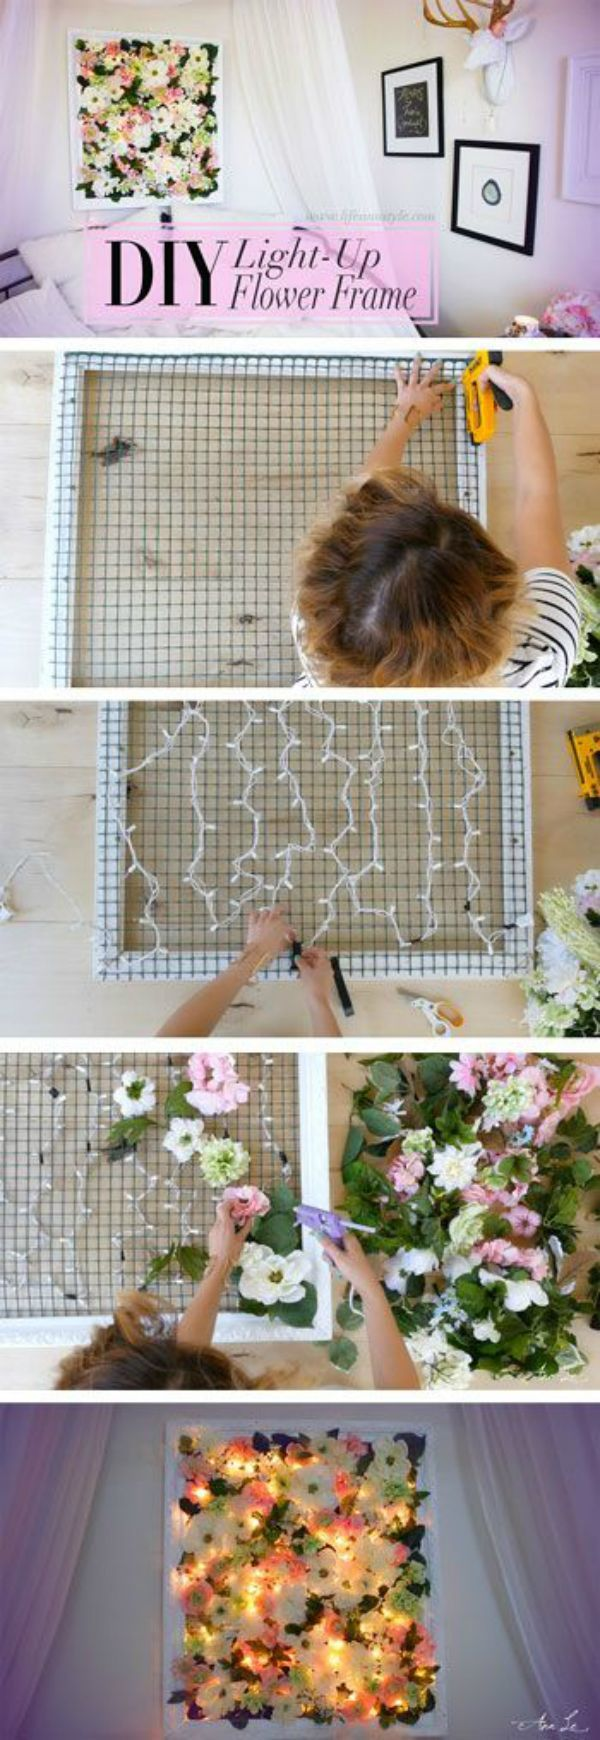 cheap bedroom decor ideas diy light up flower frame http cheap bedroom decor ideas diy light up flower frame http